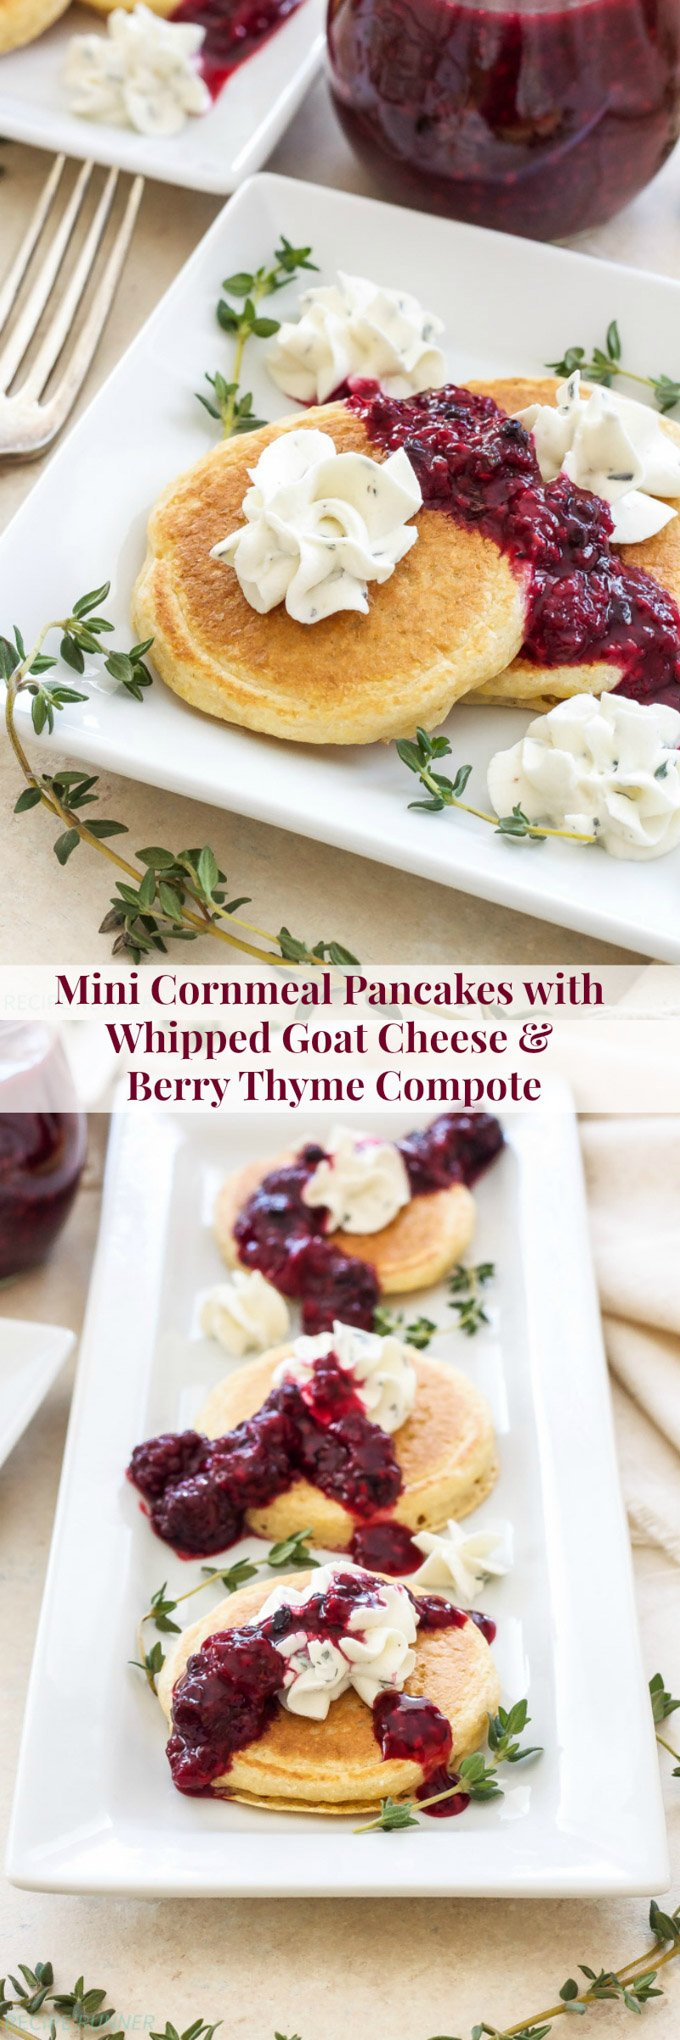 Mini Cornmeal Pancakes with Whipped Goat Cheese and Berry Thyme Compote | A delicious blend of sweet and savory flavors that can be served with brunch or as an appetizer!